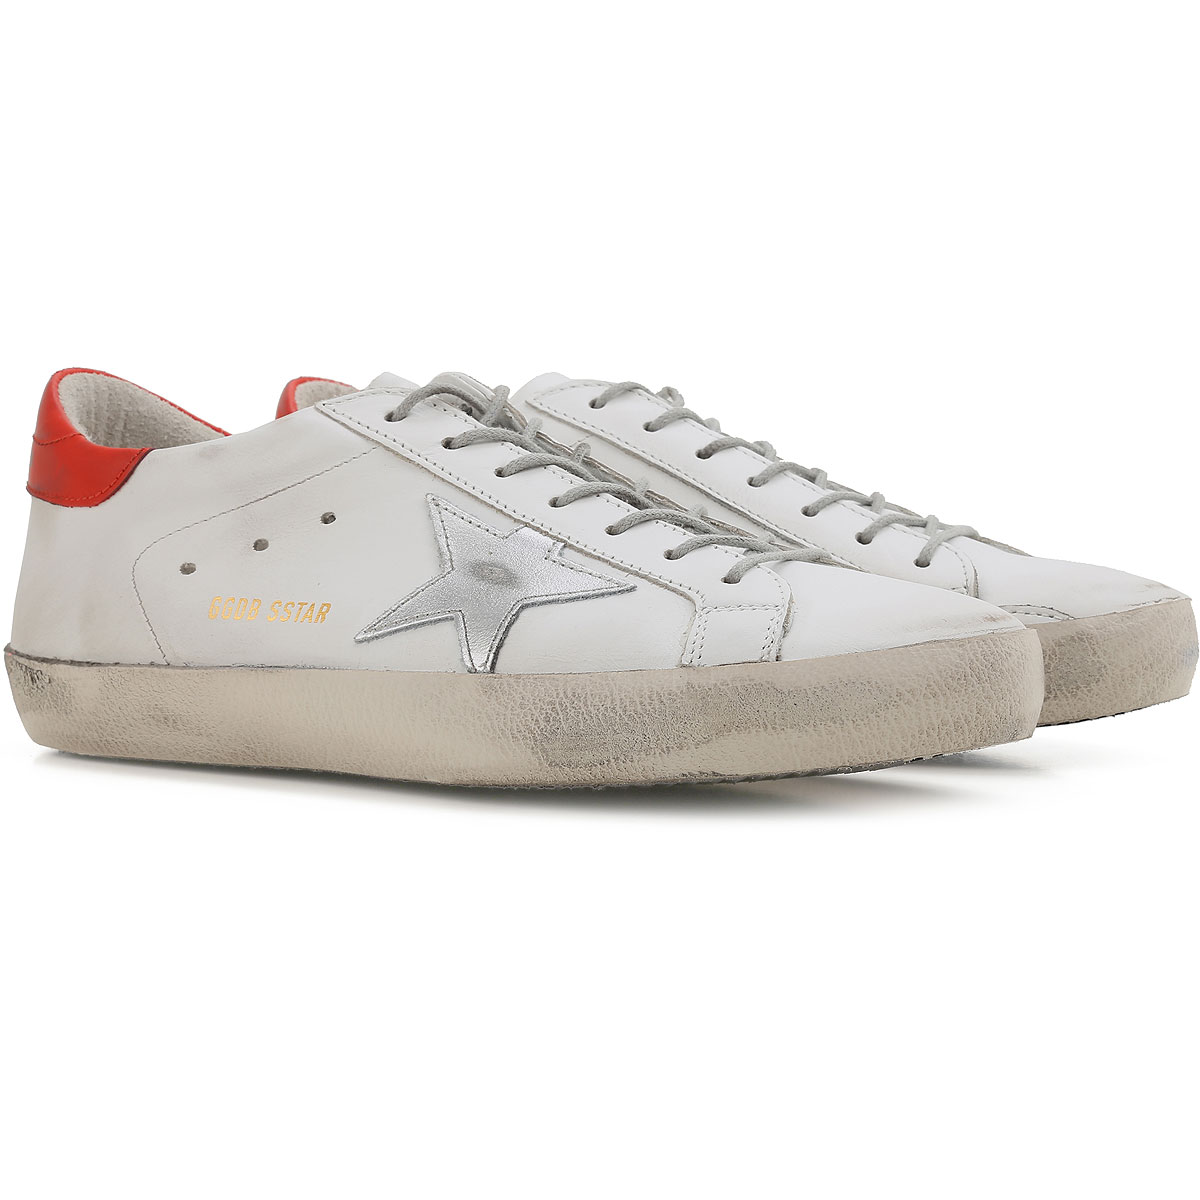 Sneakers for Men On Sale, Dirty White, Leather, 2017, 6.5 Golden Goose